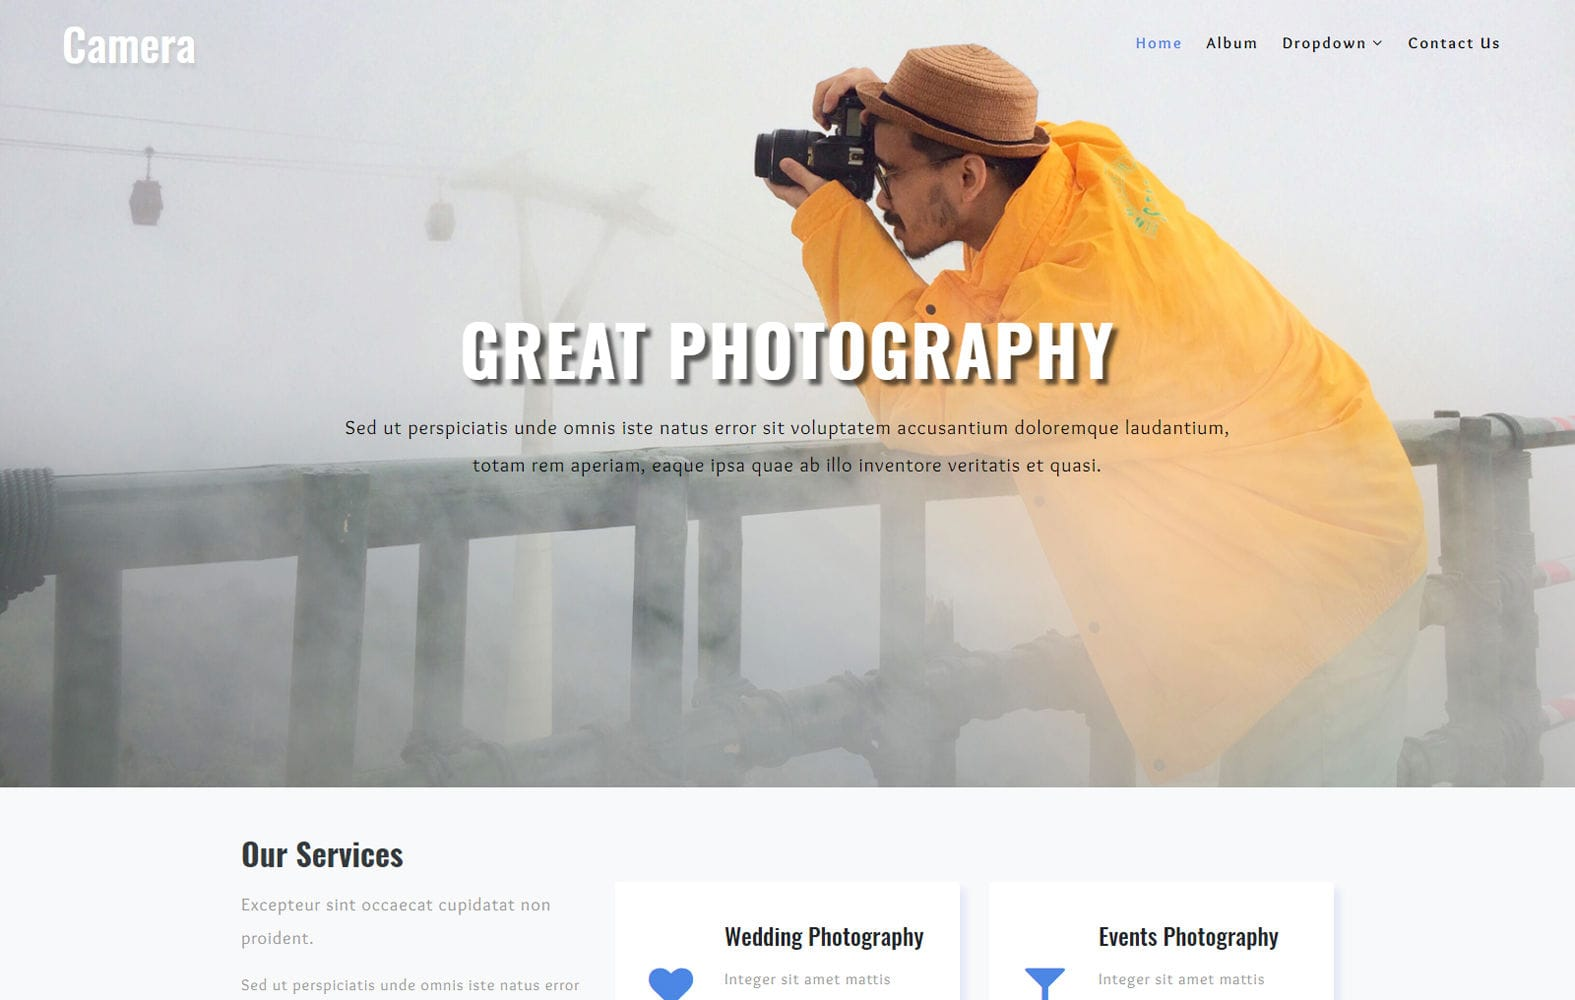 Camera a Photo Gallery Category Bootstrap Responsive Web Template Mobile website template Free